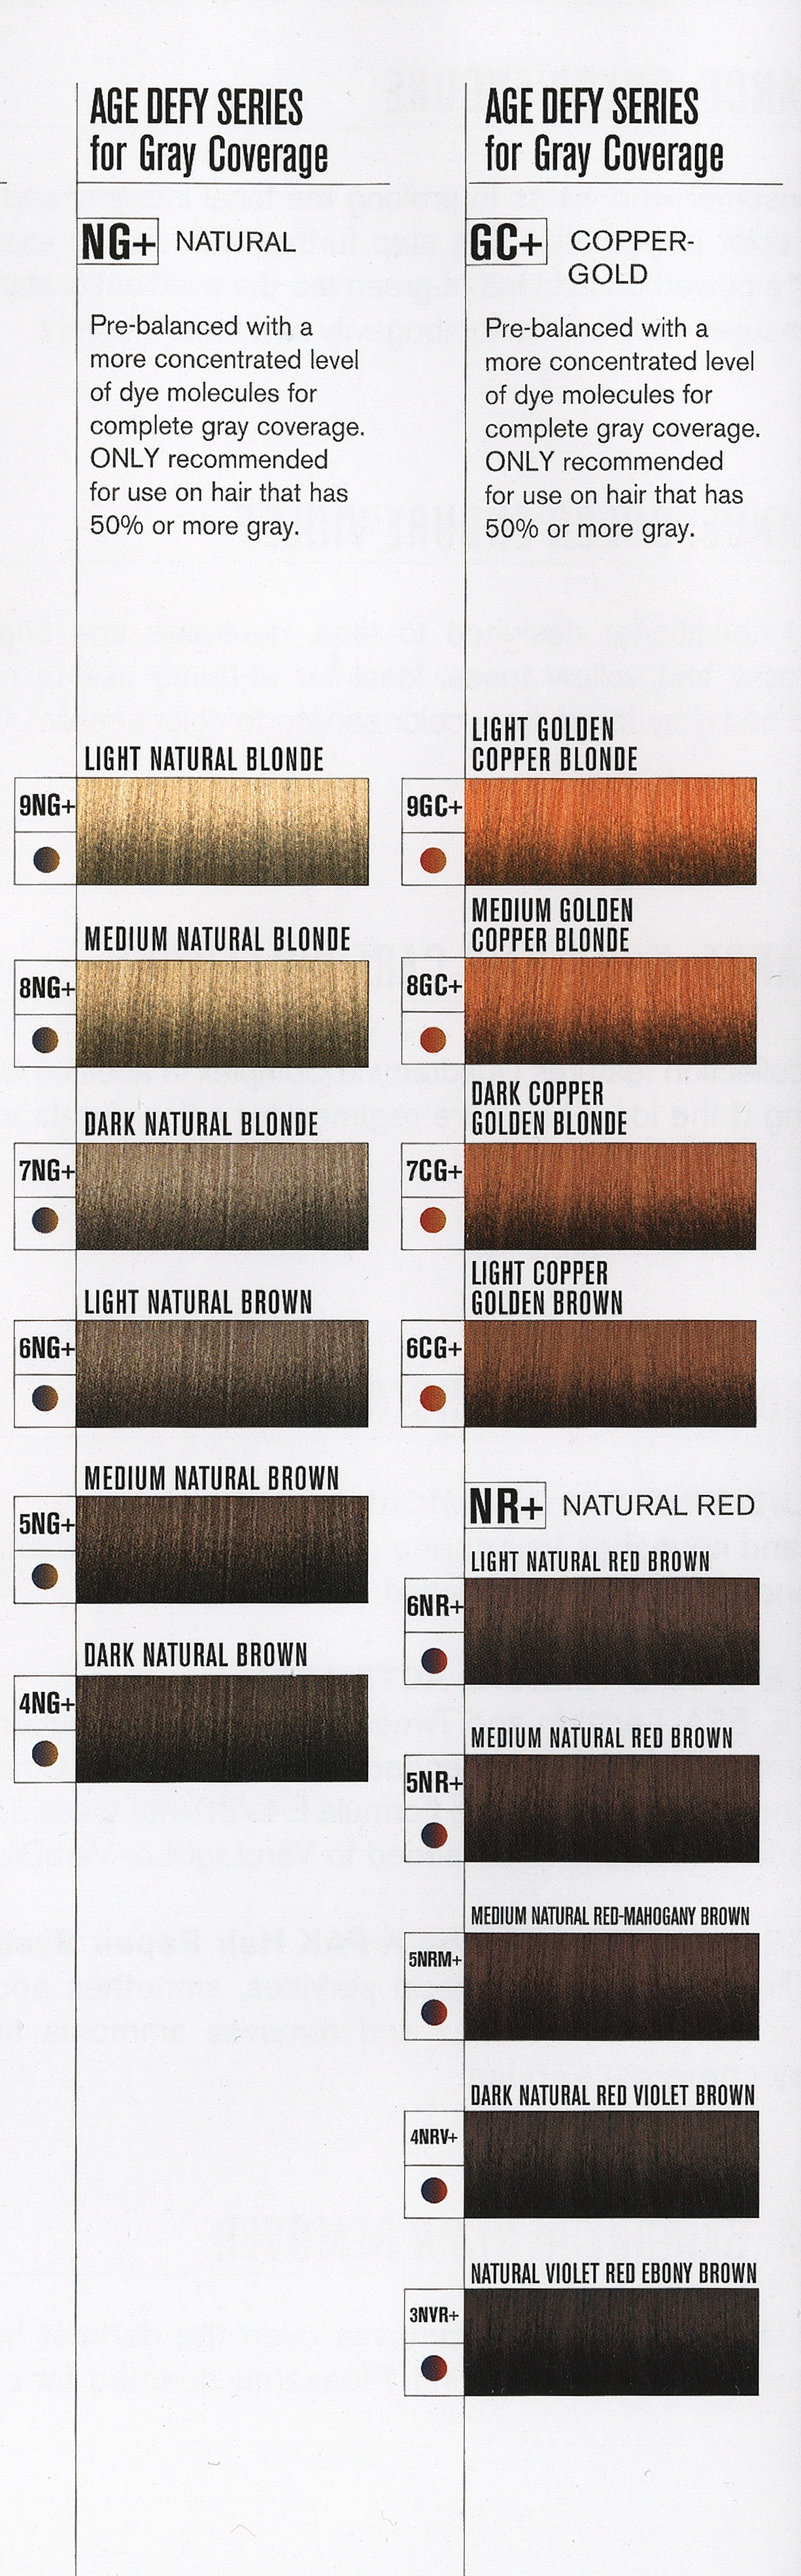 Sallys Hair Color Hair Color Chart Age Defy